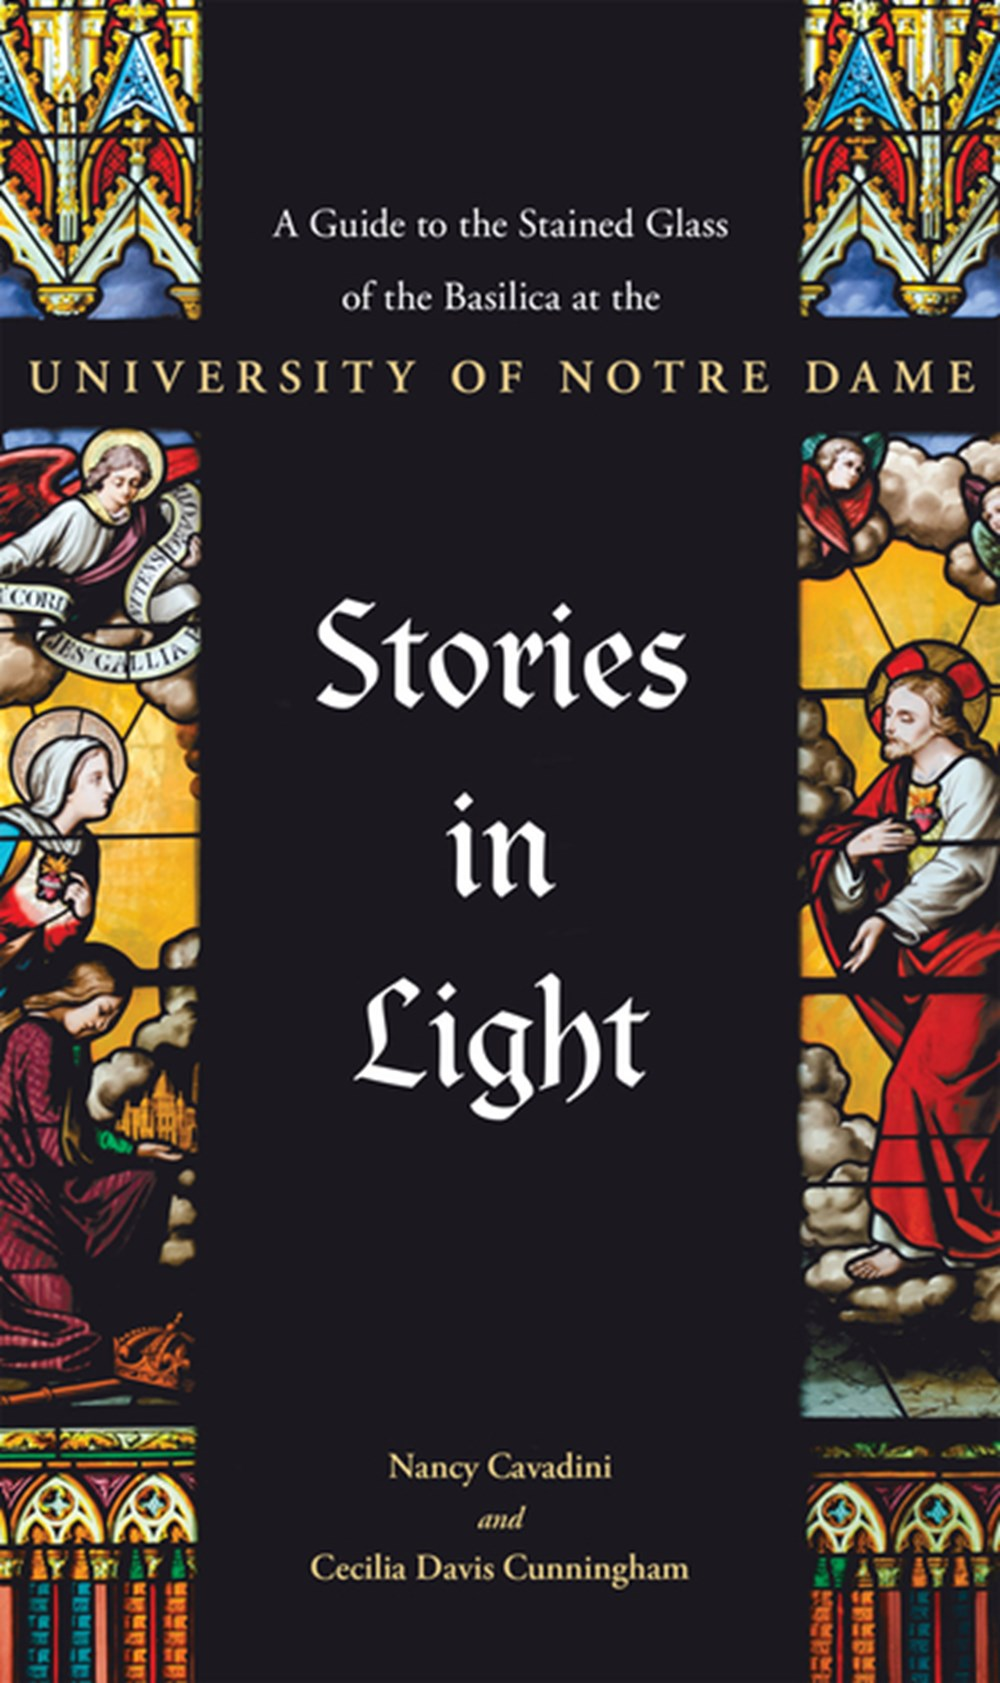 Stories in Light A Guide to the Stained Glass of the Basilica at the University of Notre Dame